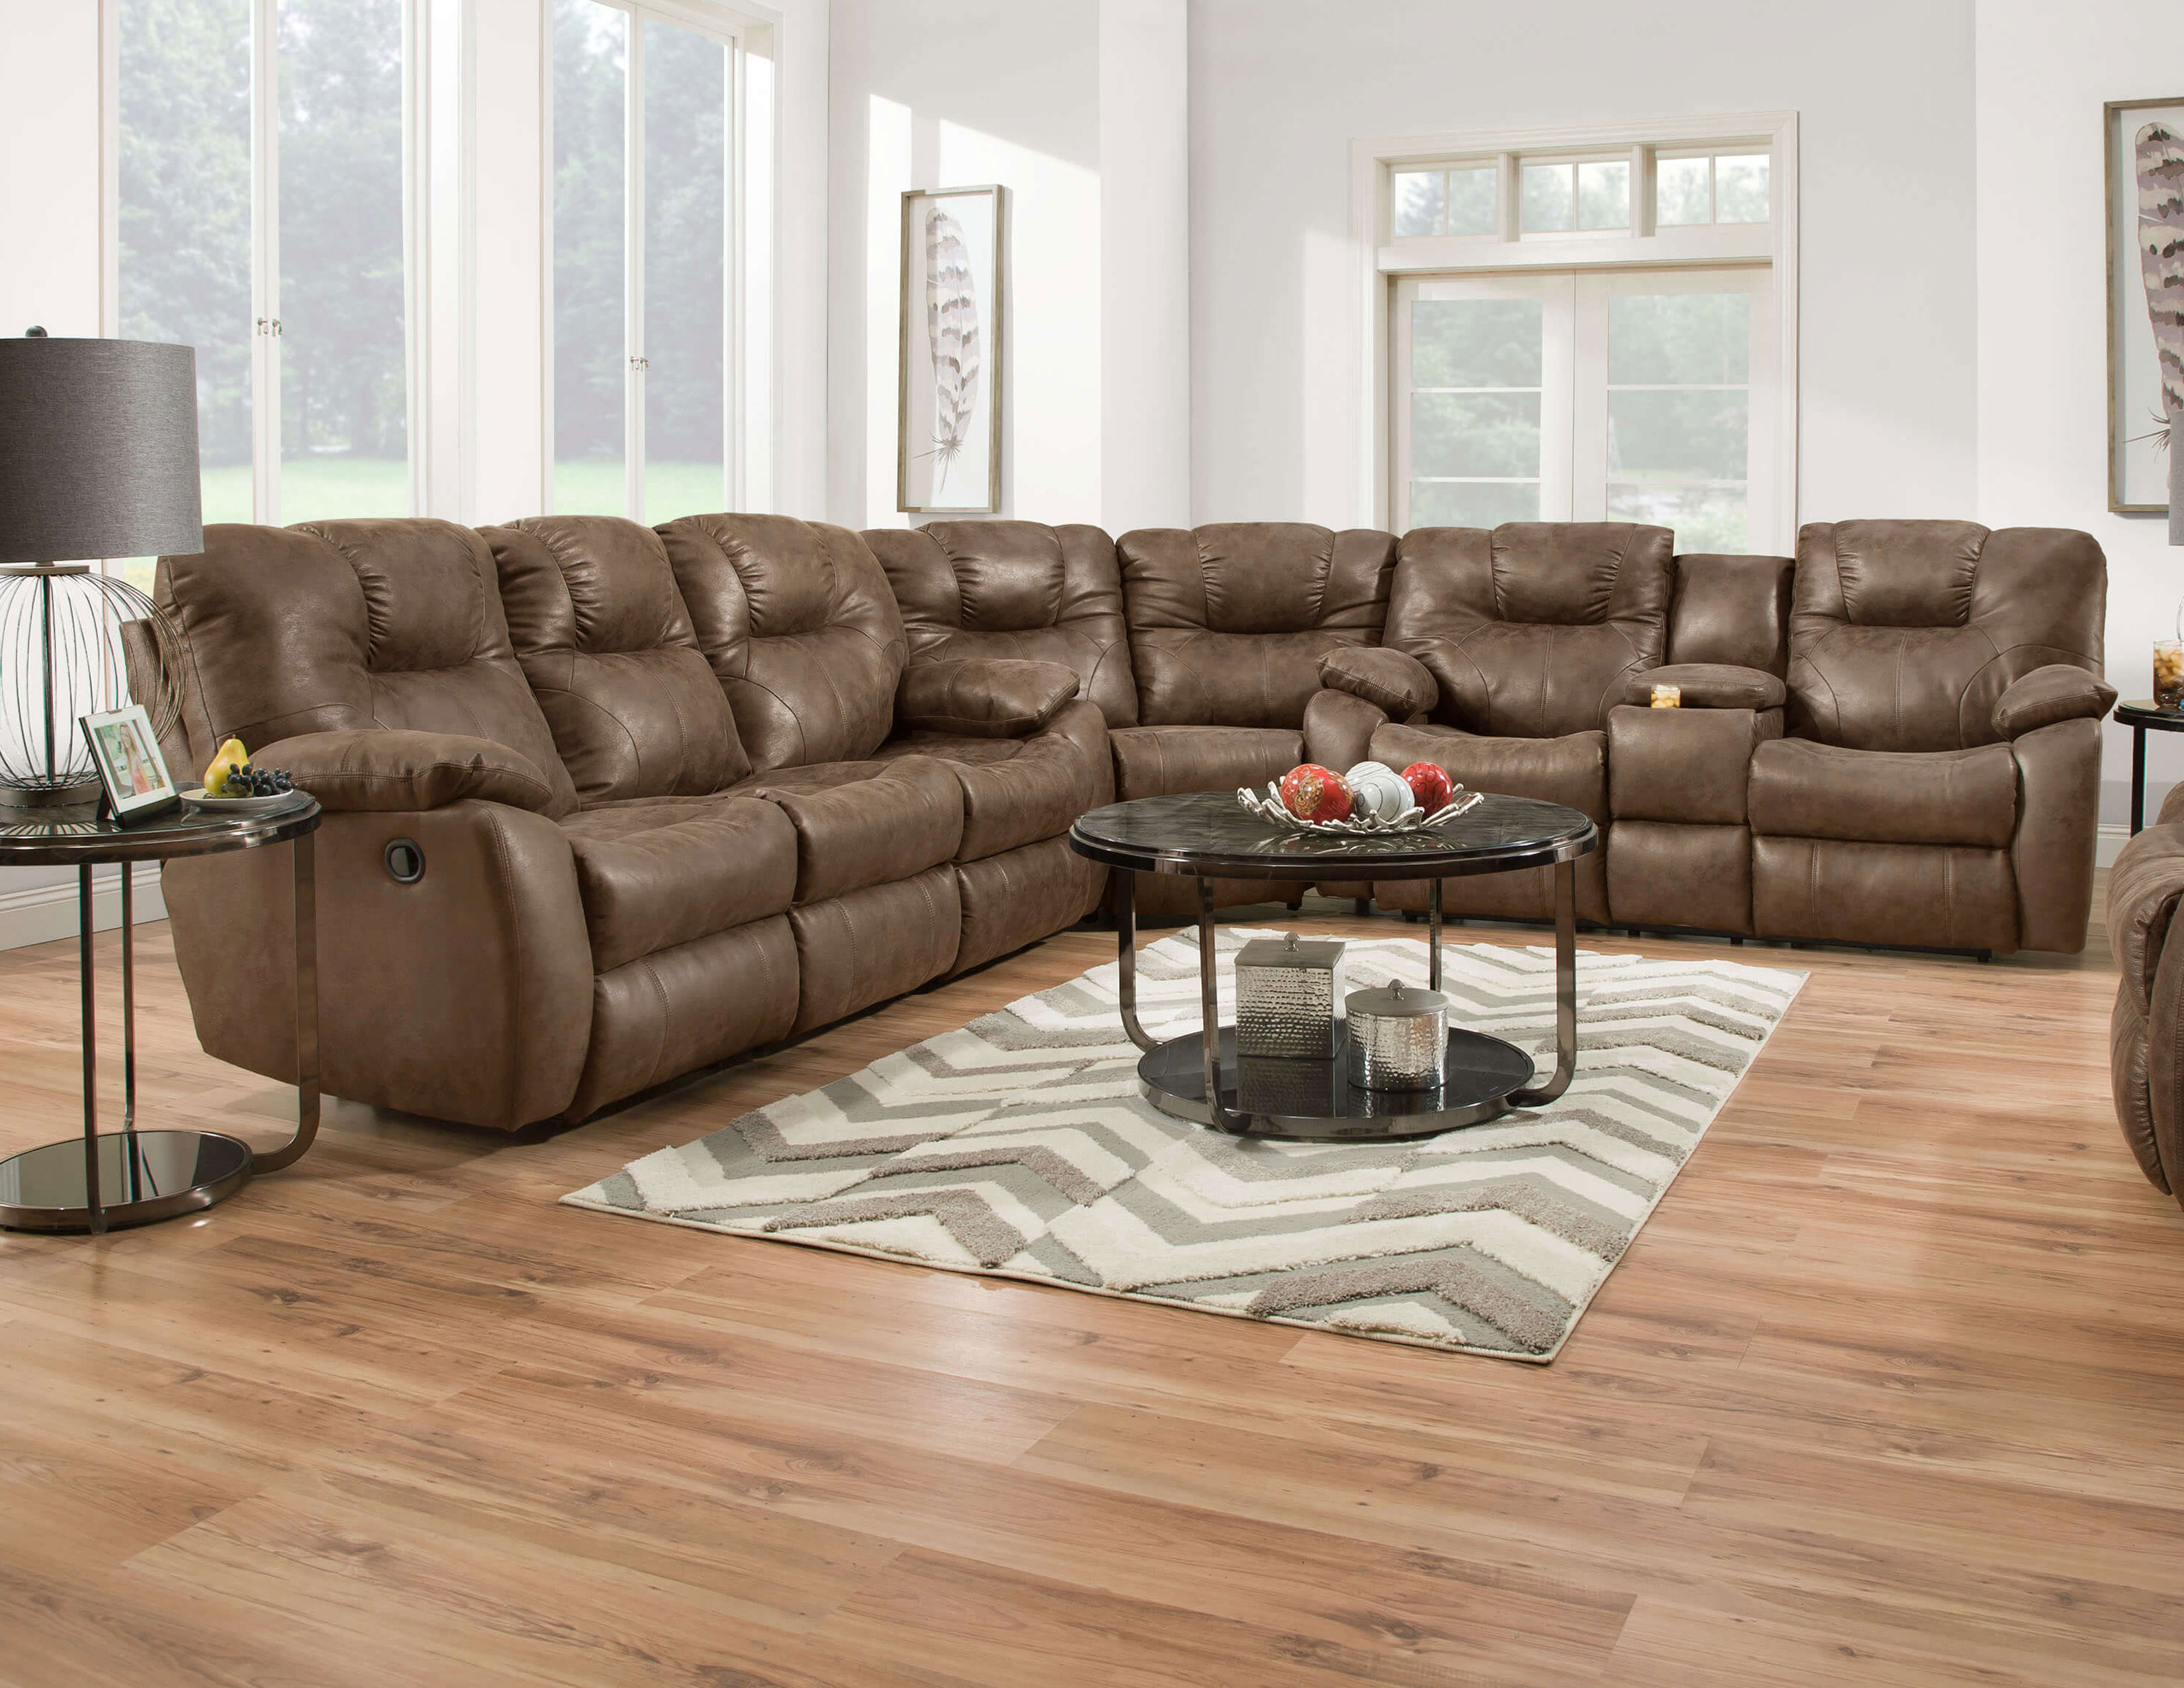 Avalon 838 Reclining Sectional 140 Fabrics And Sofas And Sectionals